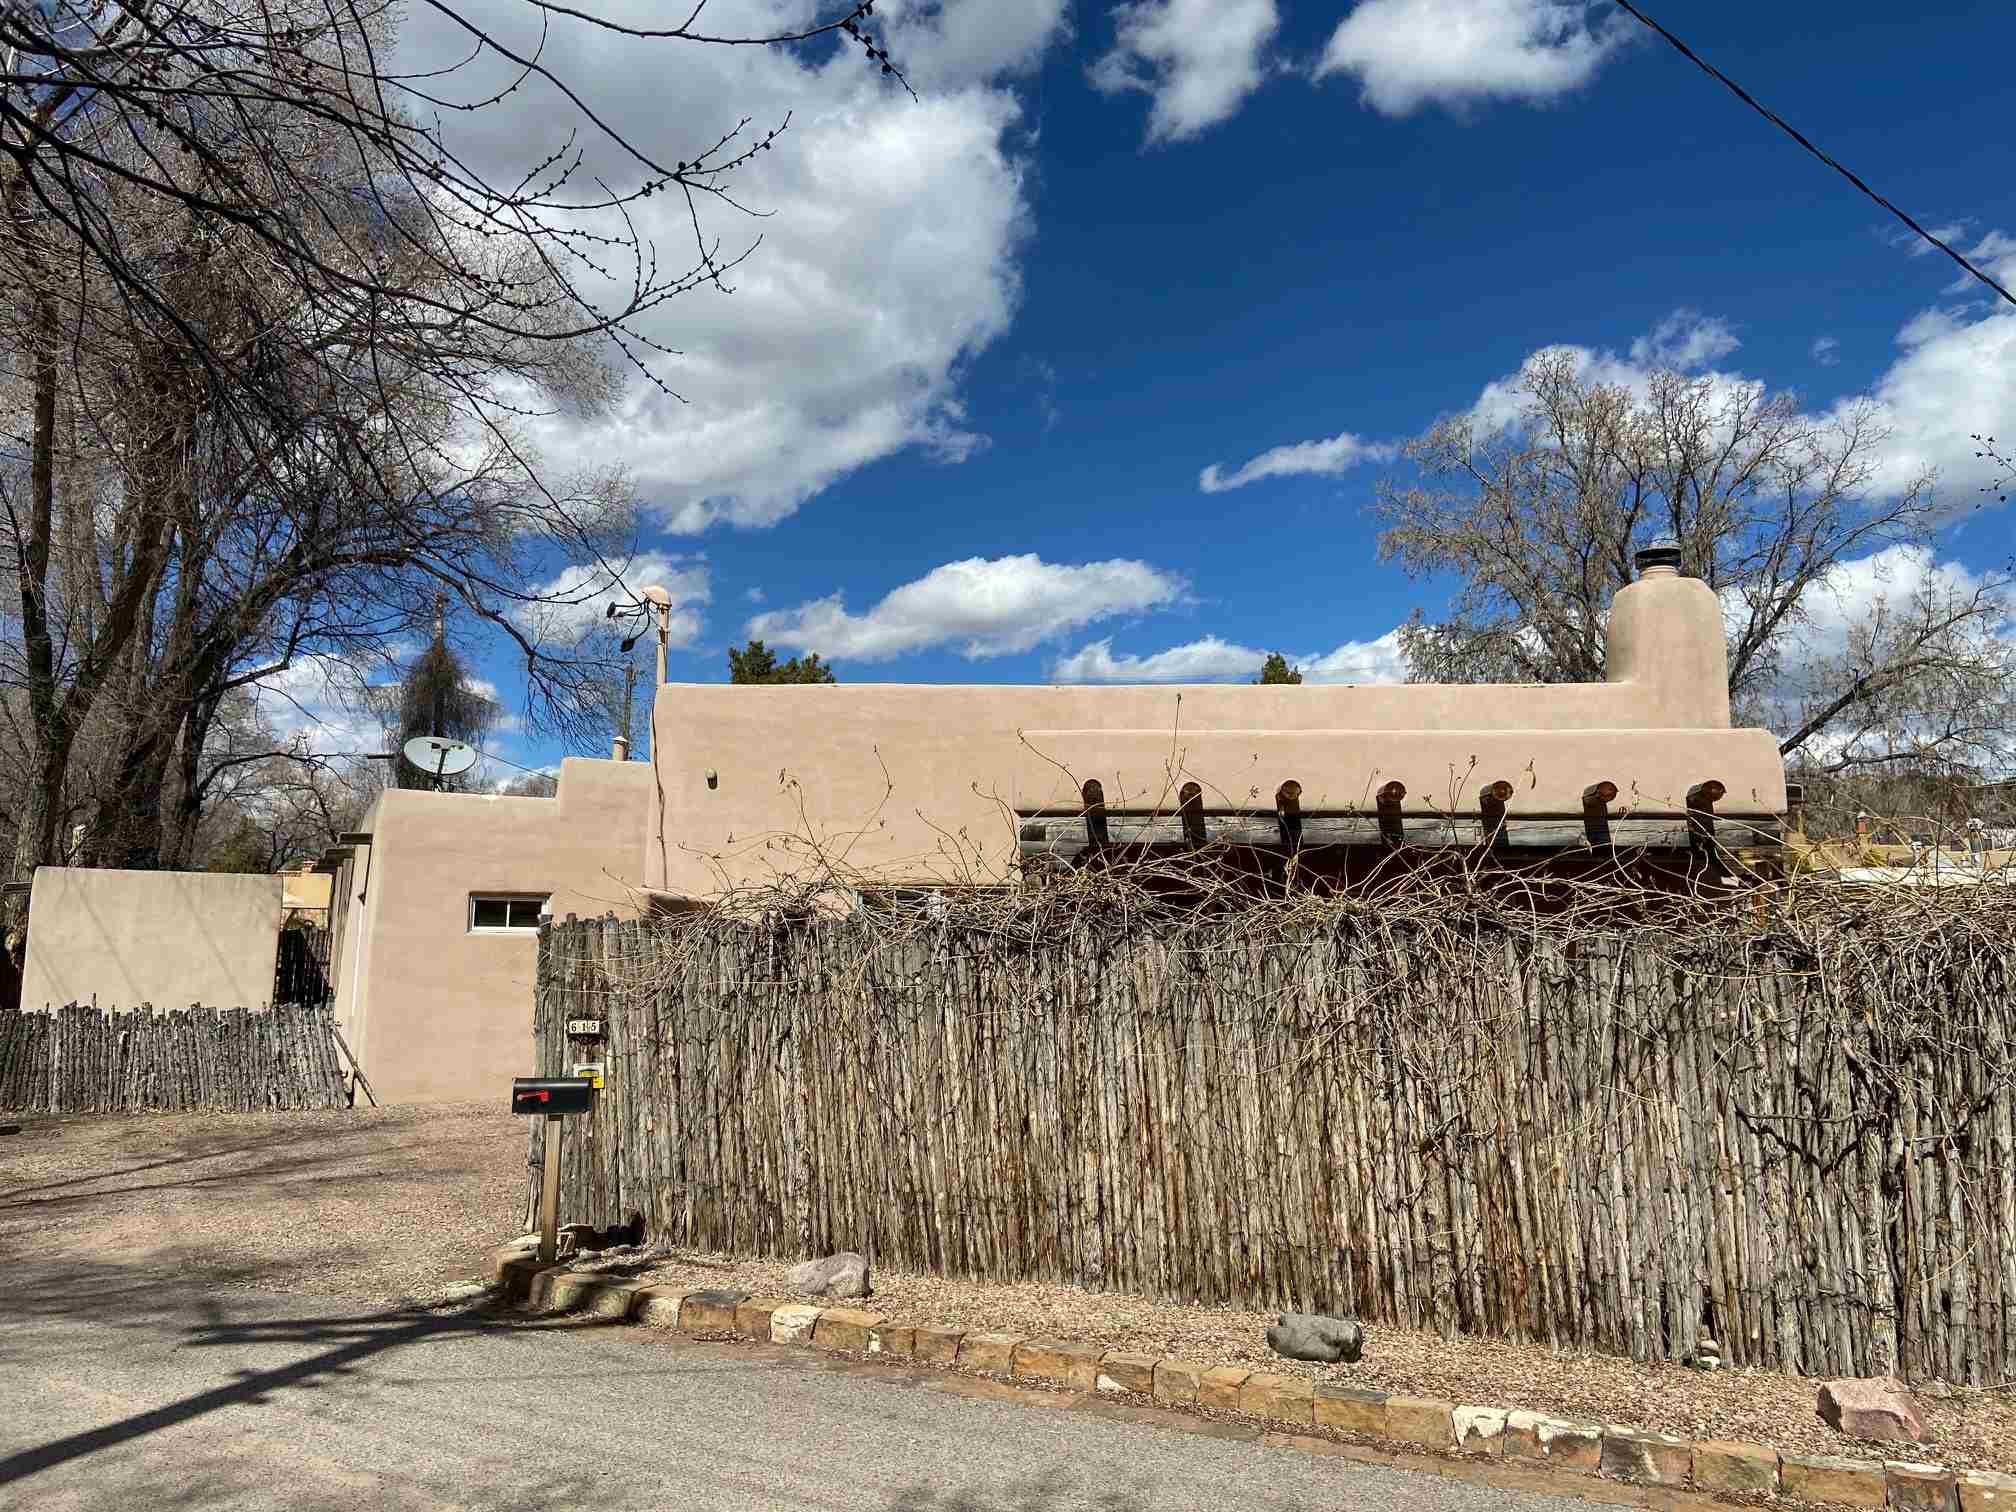 NEWS - Your 24/7 Virtual Open House Right Now. This is a new on the market opportunity for you if you treasure Santa Fe and imagine living here in a custom fine home on the end of a quiet street close to the Historic Plaza on the north side of town. Inside the gate, you will enter a sunny courtyard and a Santa Fe Style custom home filled with light, a Eurostyle gas kitchen, kiva fireplace, open concept living designed for humans who cherish a smaller space to live or for a retreat. This is one of three homes in Las Rosas. This one has A/C, high speed cable, 2 off street parking spaces a roof warranty for 10 more years and city utilties. PLUS - this home does qualify for conventional financing. Enjoy your tour. Schedule your consult today. See Virtual Tour.